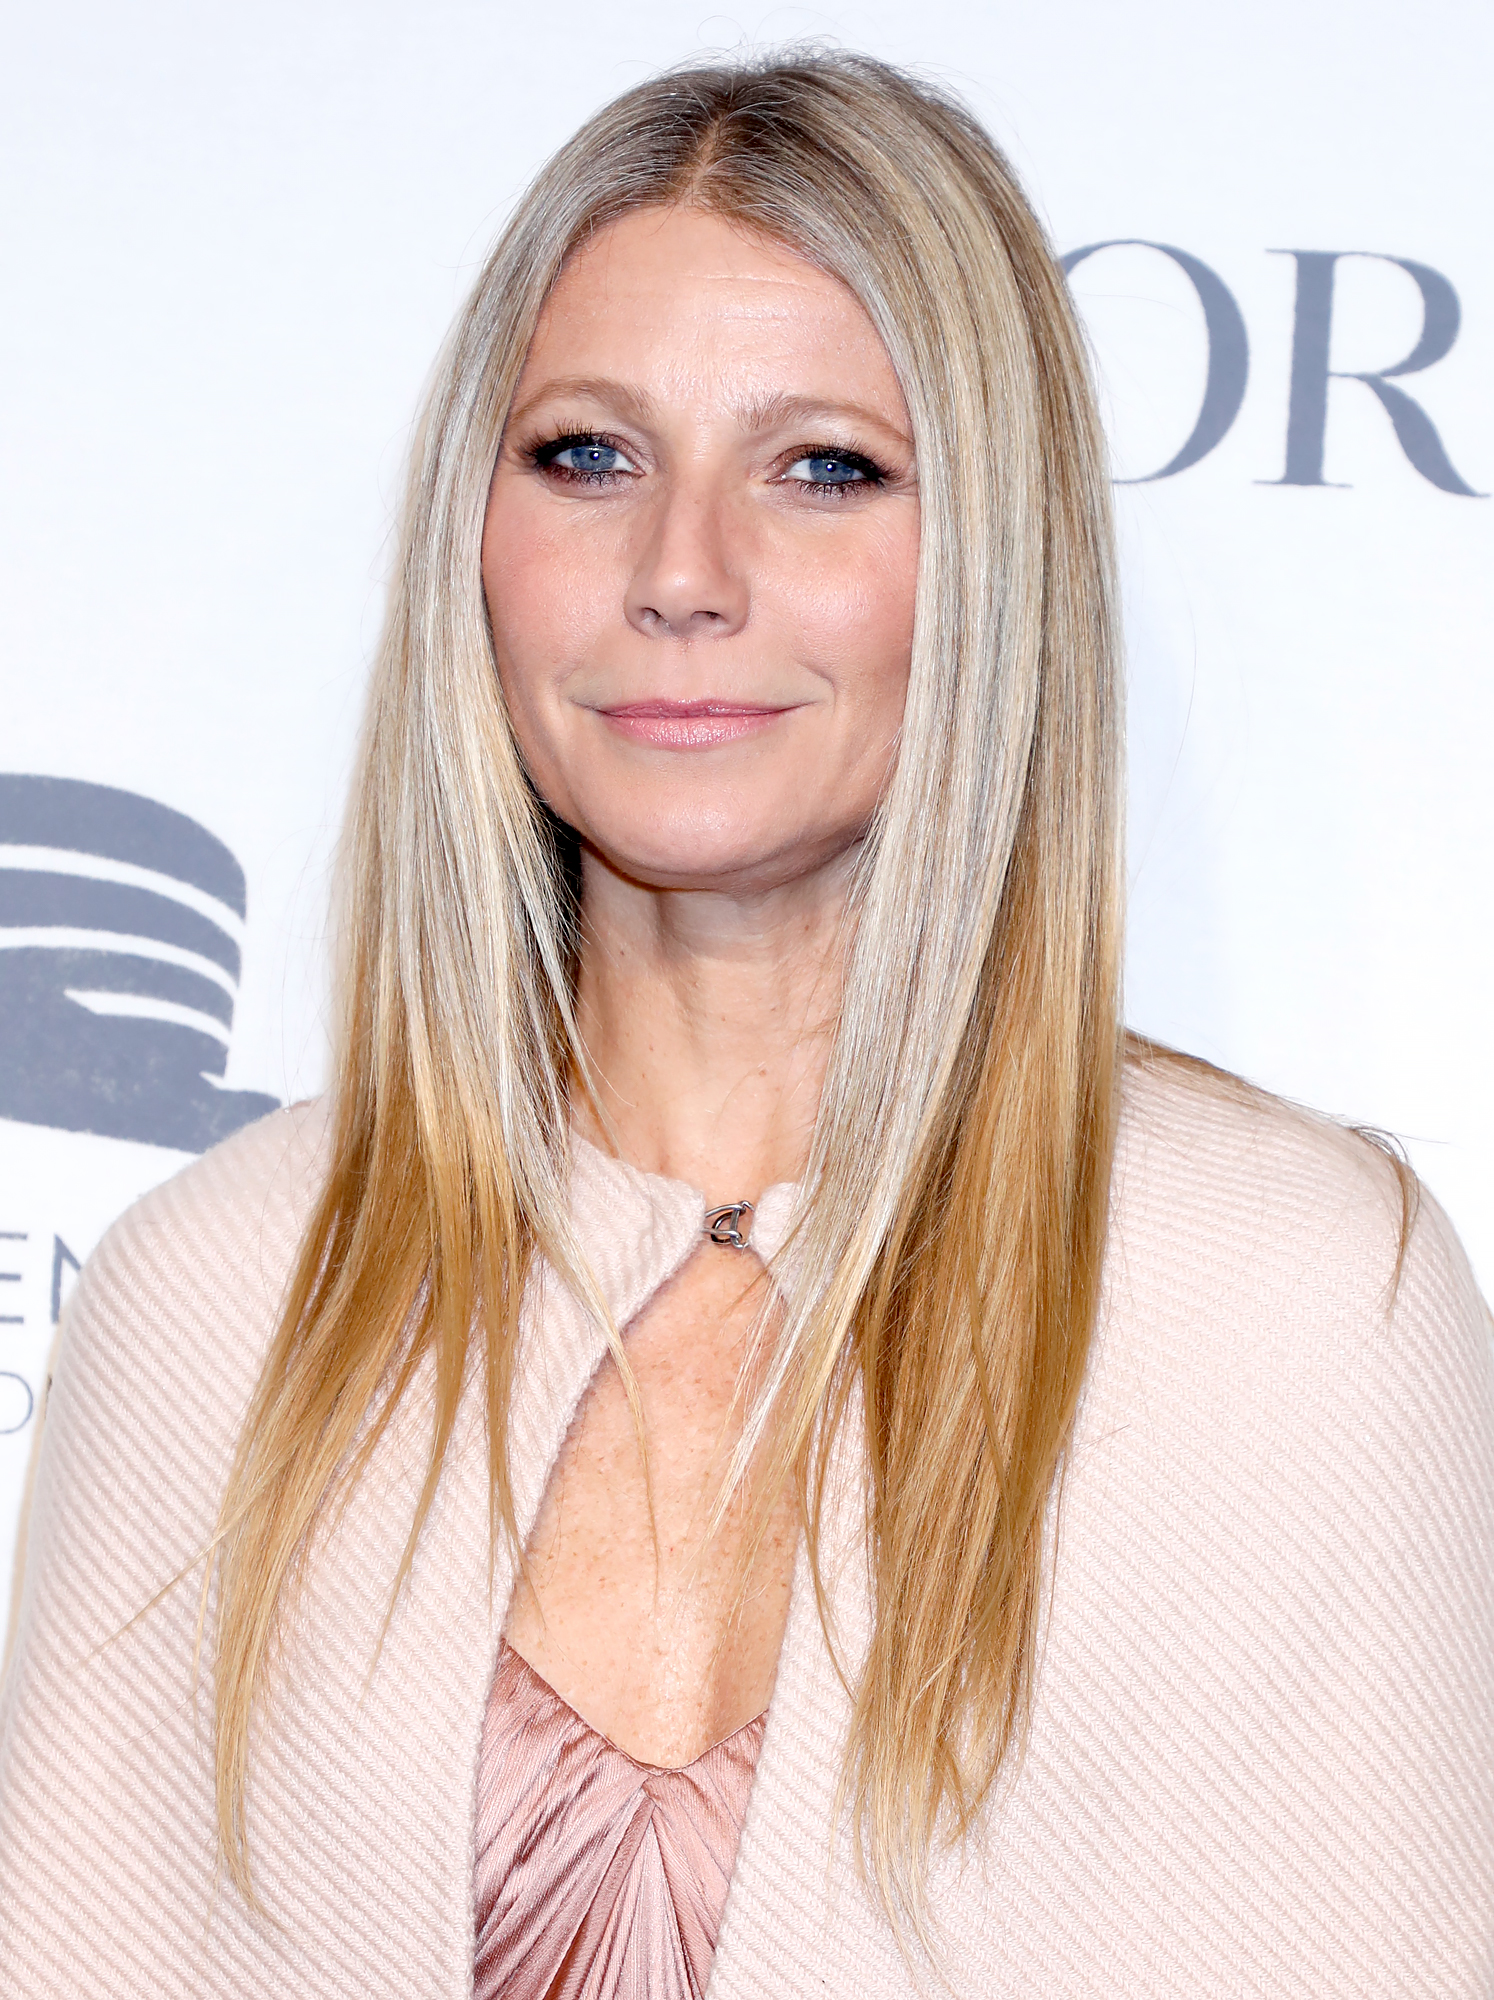 Gwyneth-Paltrow-Curses-Out-Instagram-User-Who-Questions-Her-Cooking-Skills